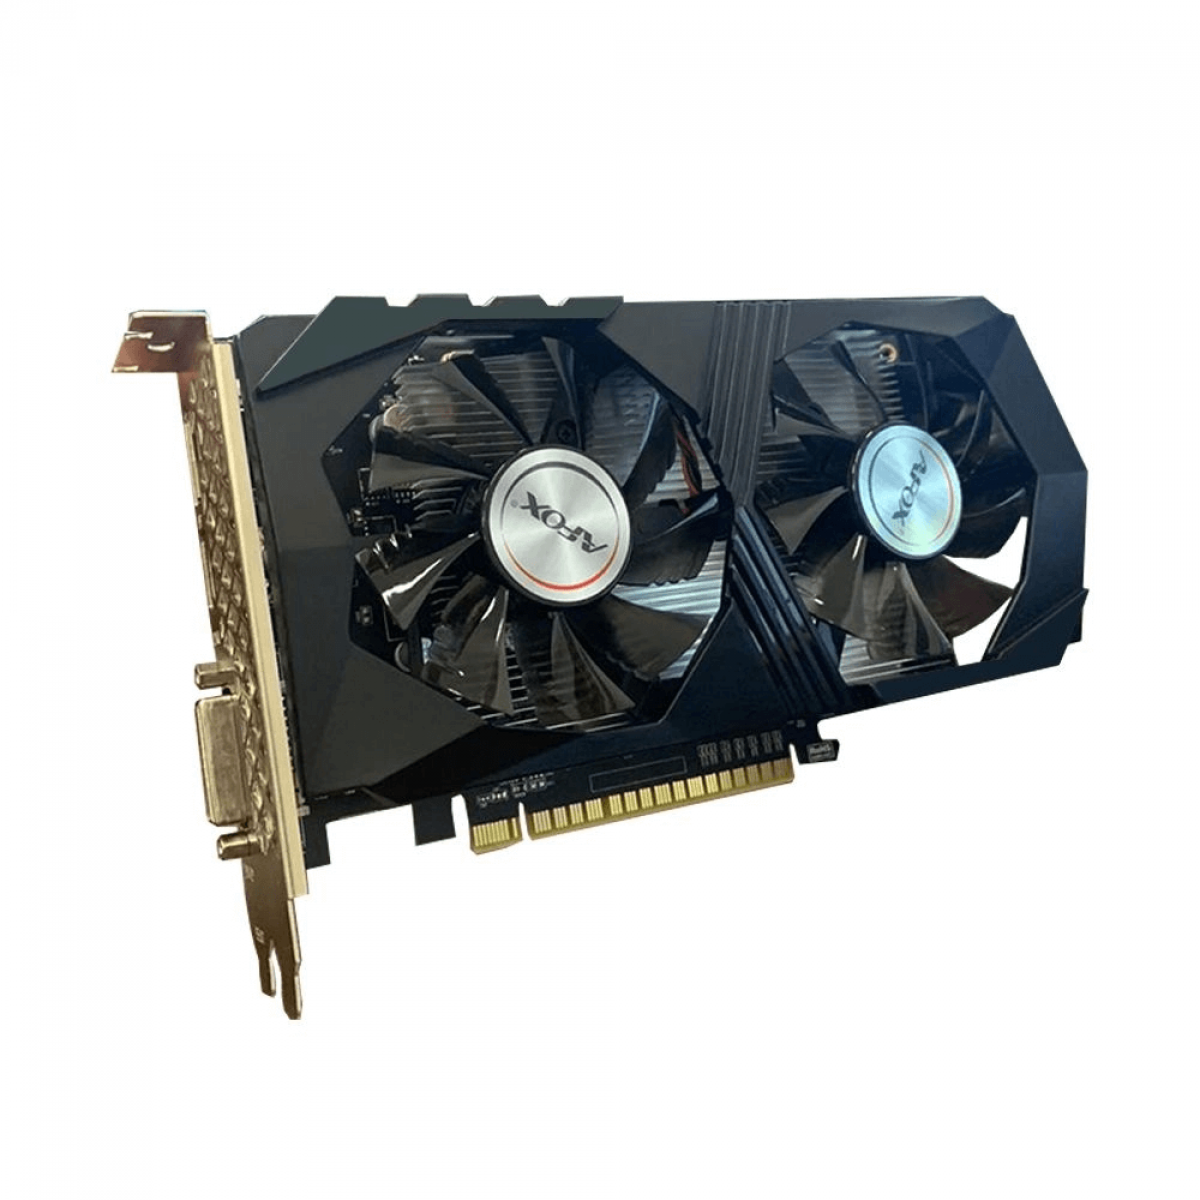 Placa de Vídeo Afox, GeForce, GTX 1050 Ti, 4GB GDDR5, 128Bit, AF1050TI-4096D5H5